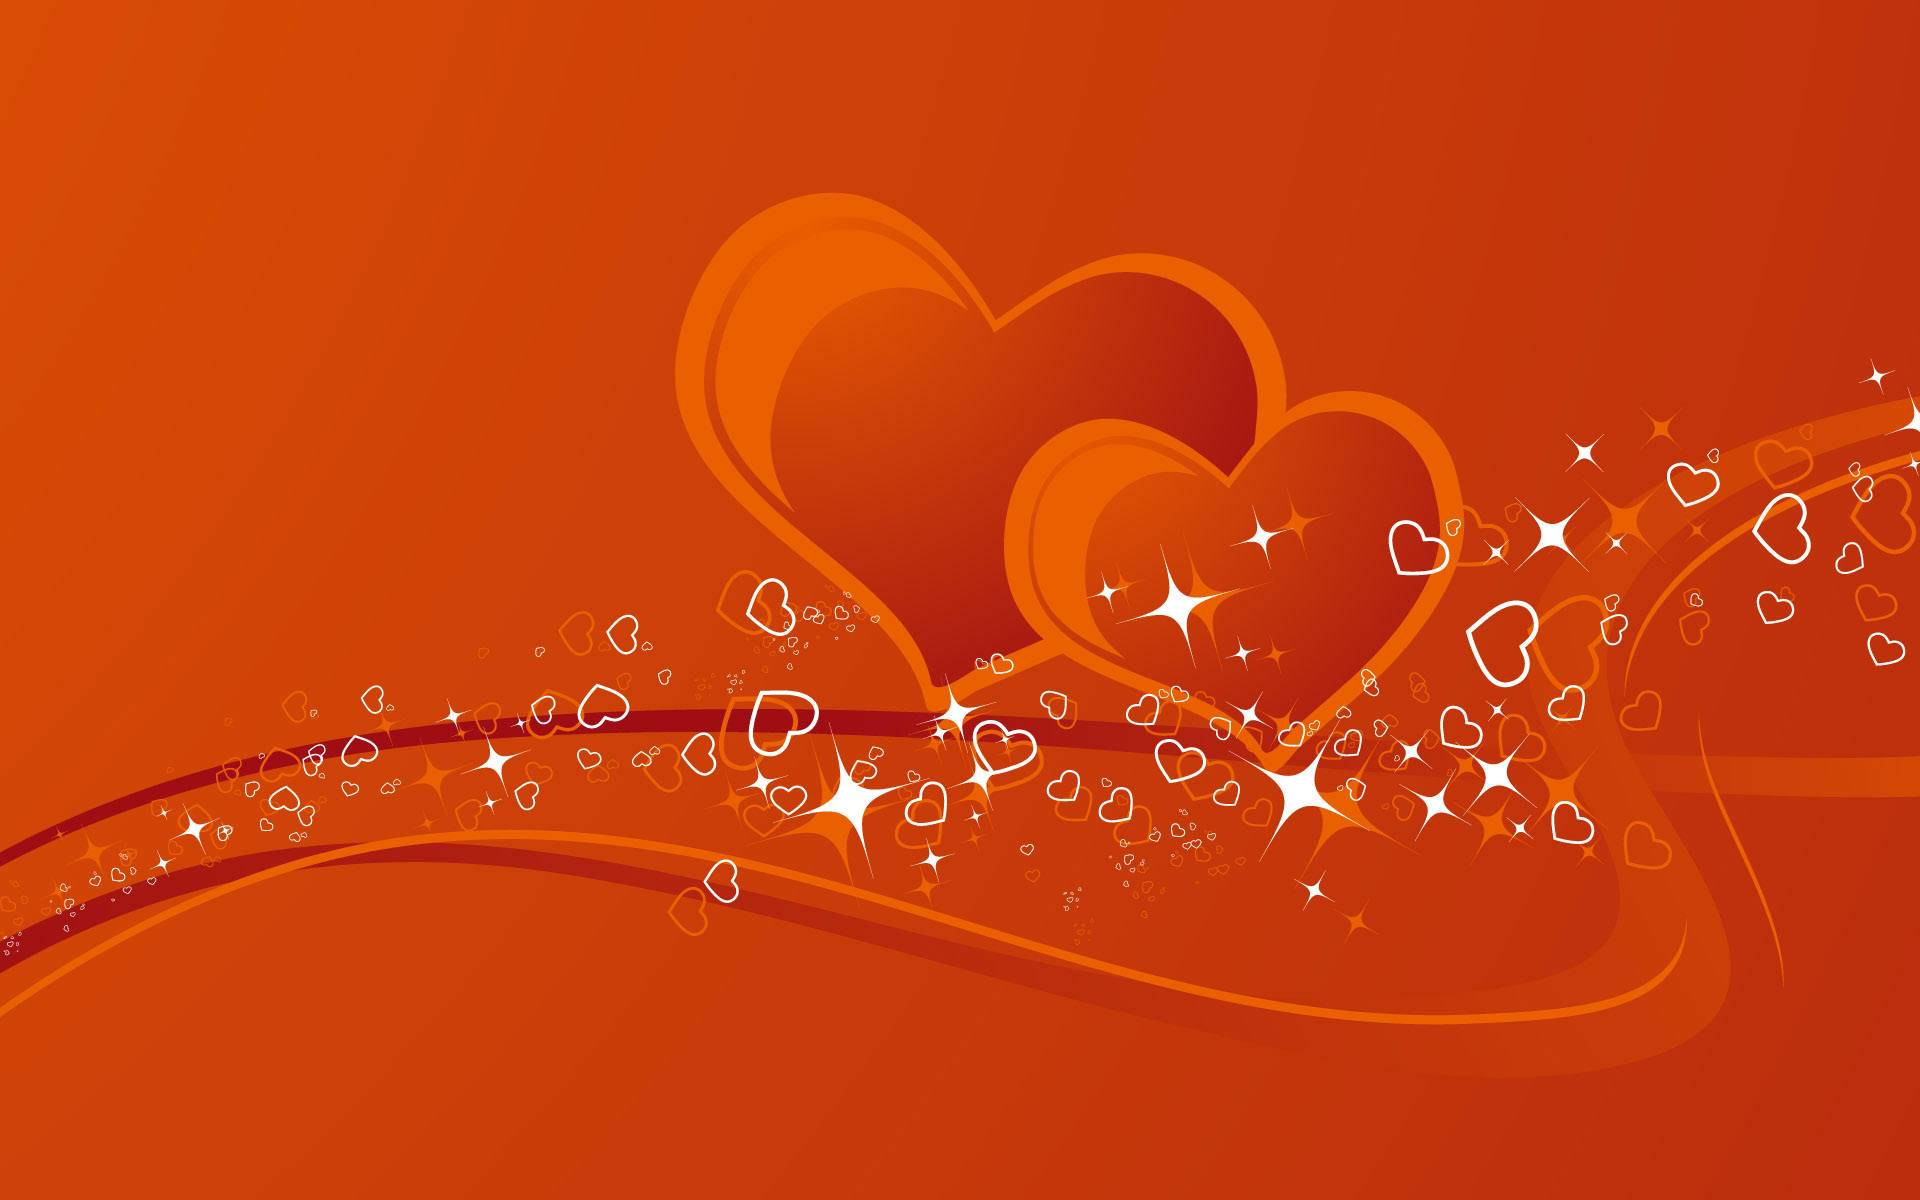 Beautiful Hearts Wallpapers